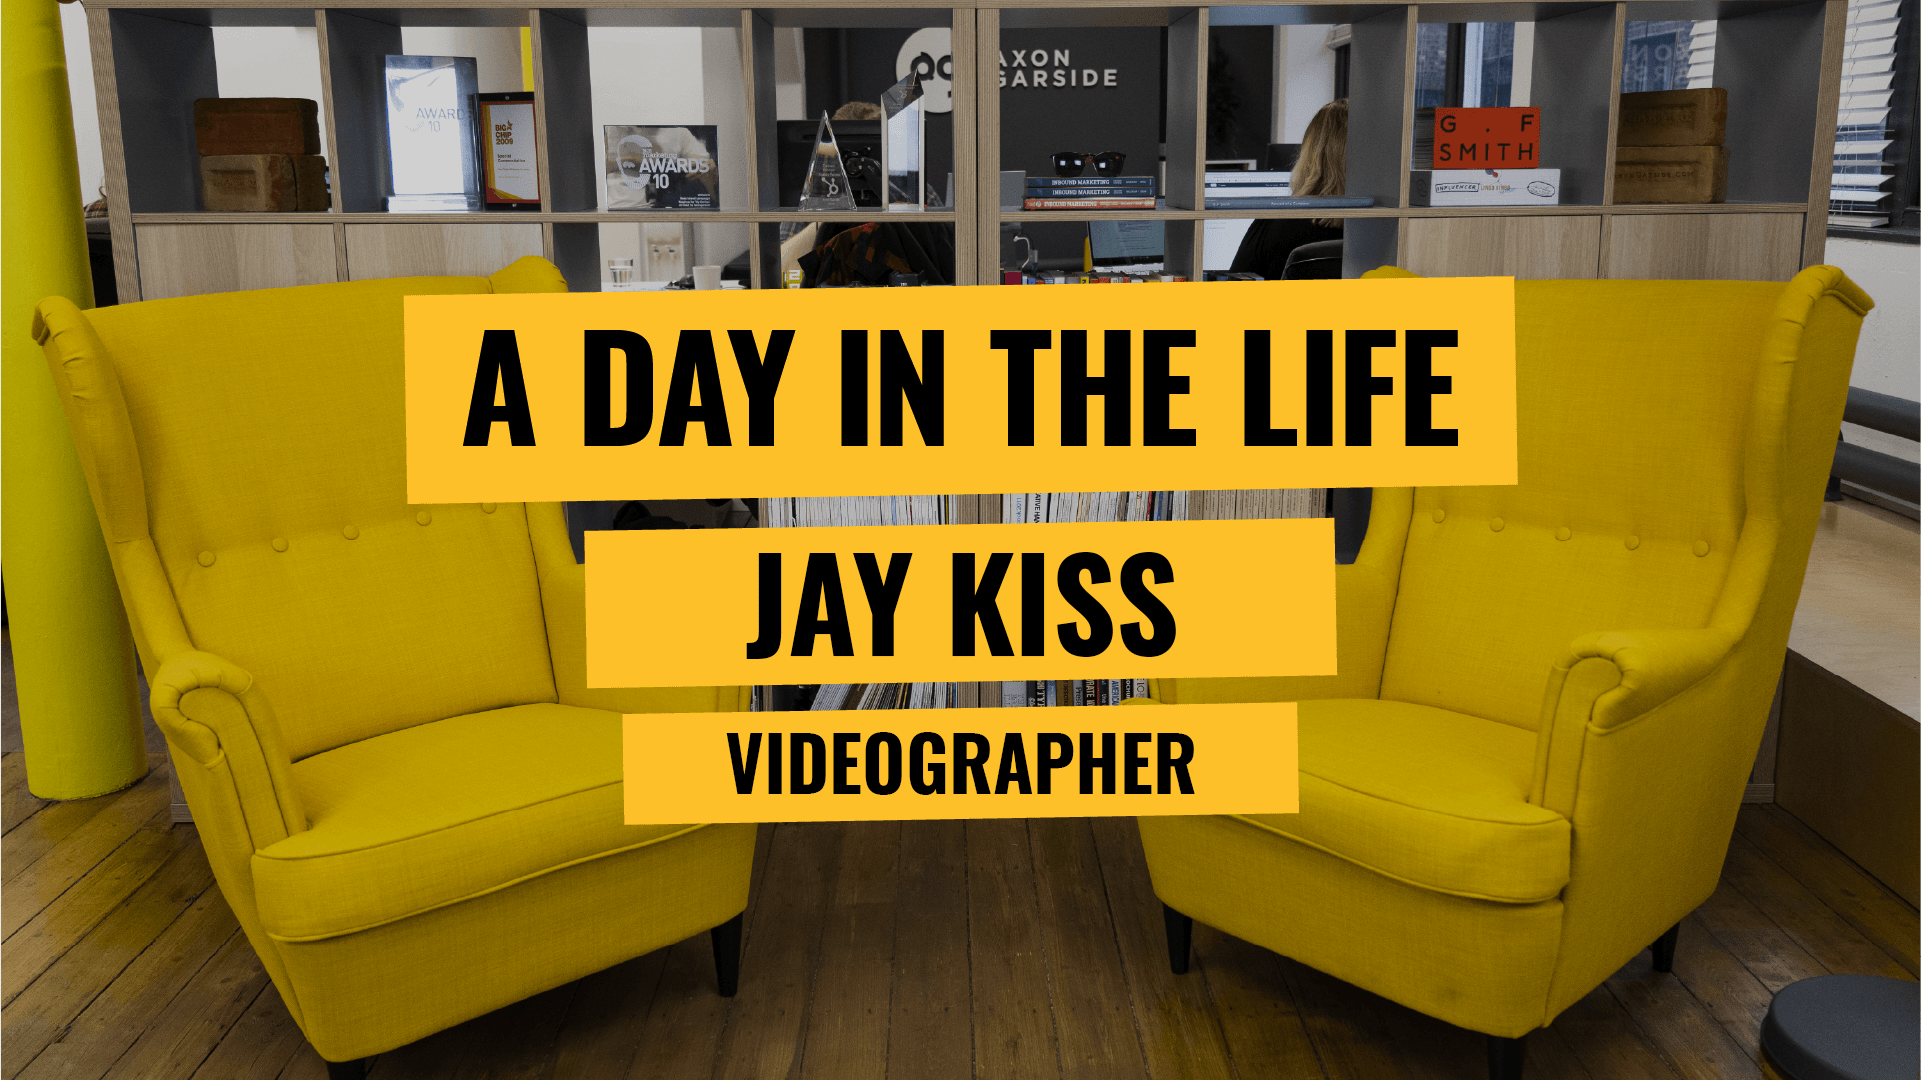 [Video] A day in the life - Video Expert Jay Kiss